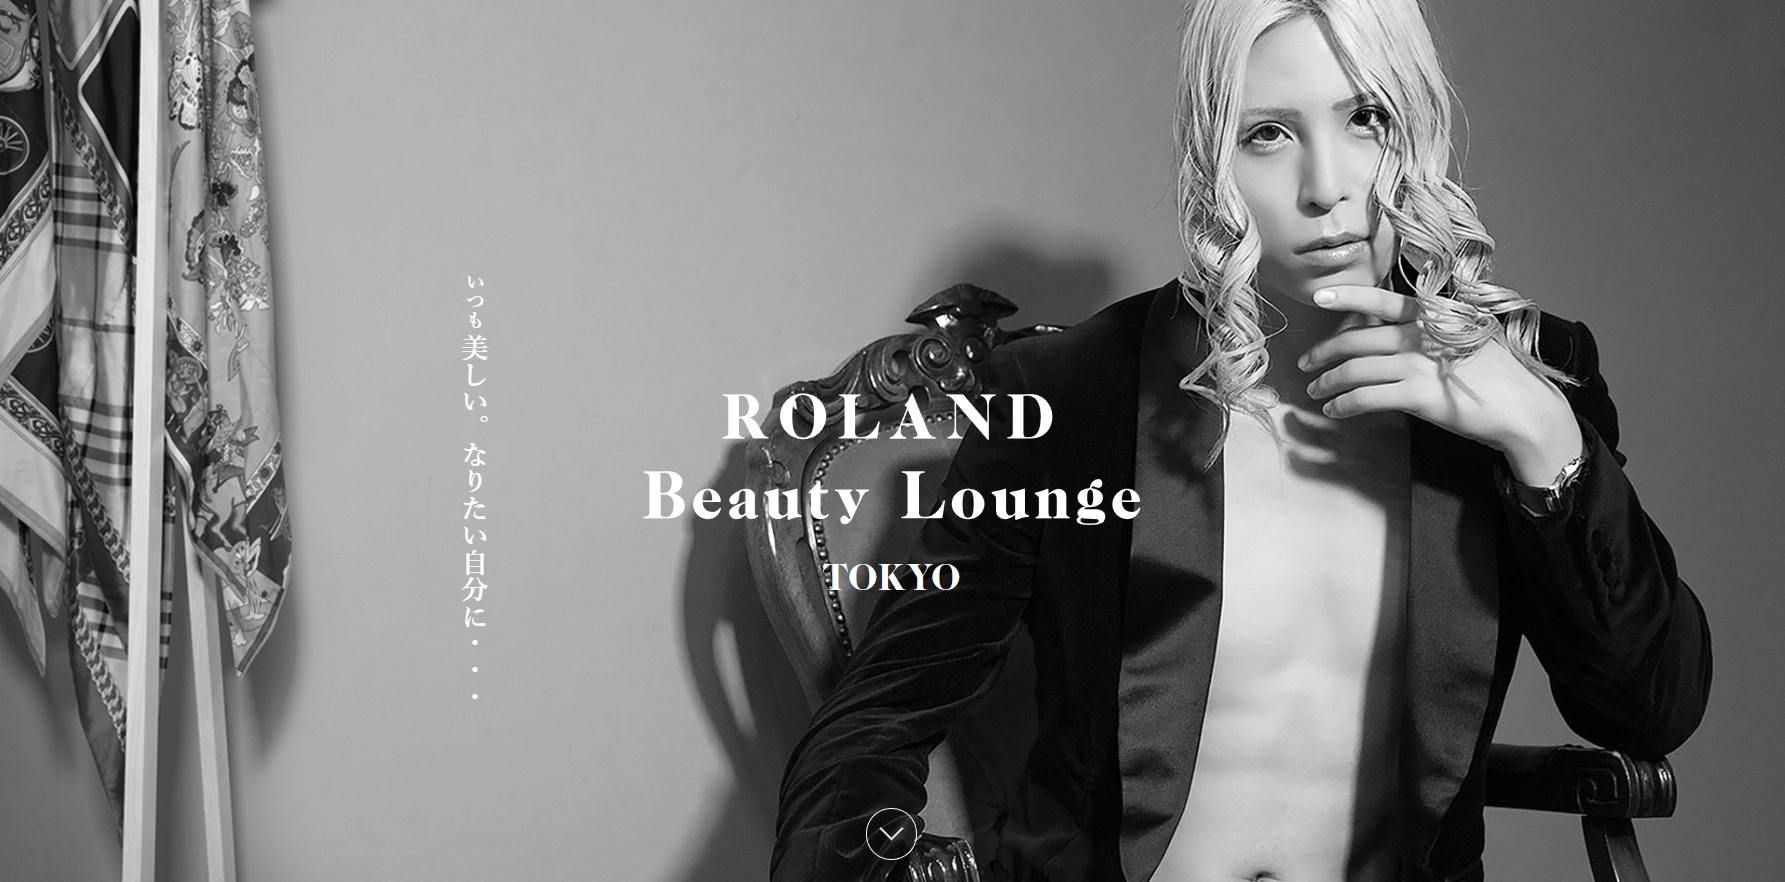 「ROLAND Beauty Lounge」の画像検索結果